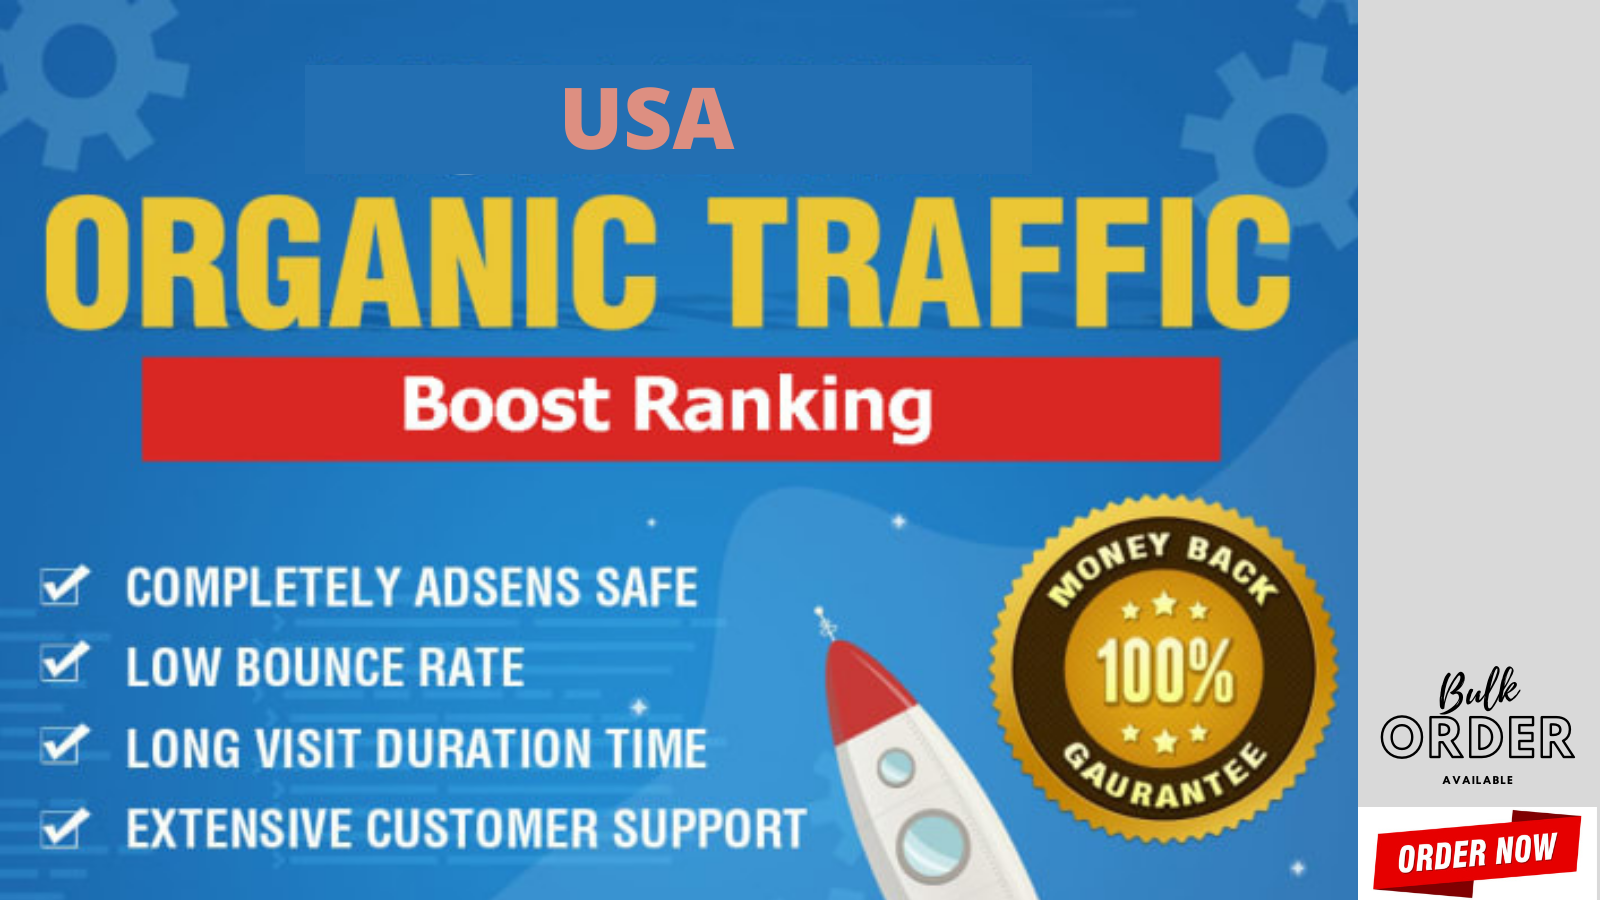 USA Website Visitors Now Order Today to Get Bonus as well